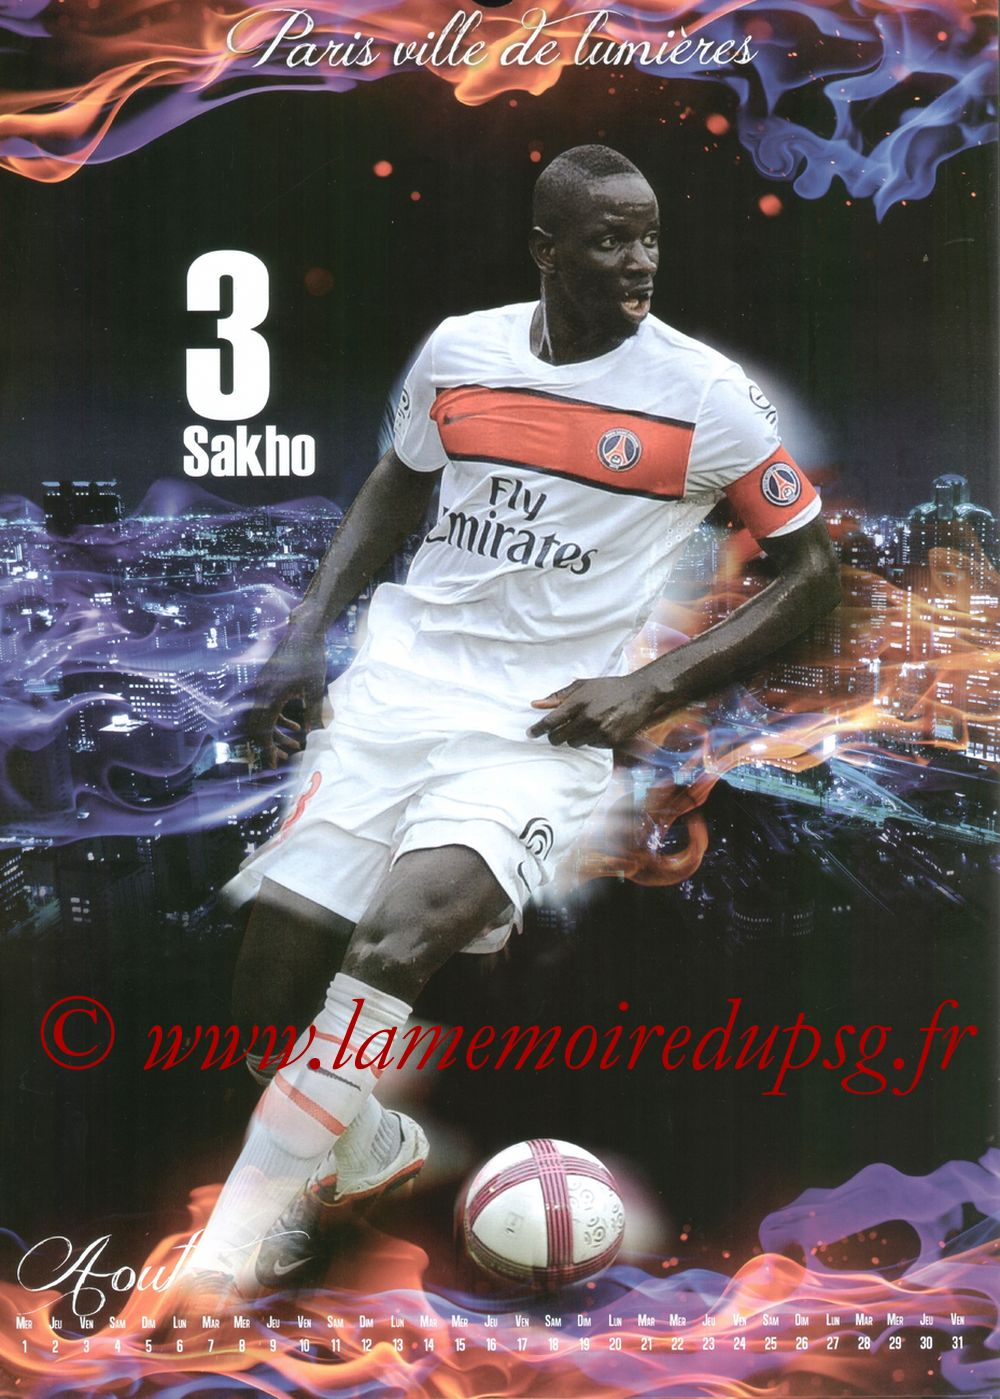 Calendrier PSG 2012bis - Page 08 - Mamadou SAKHO